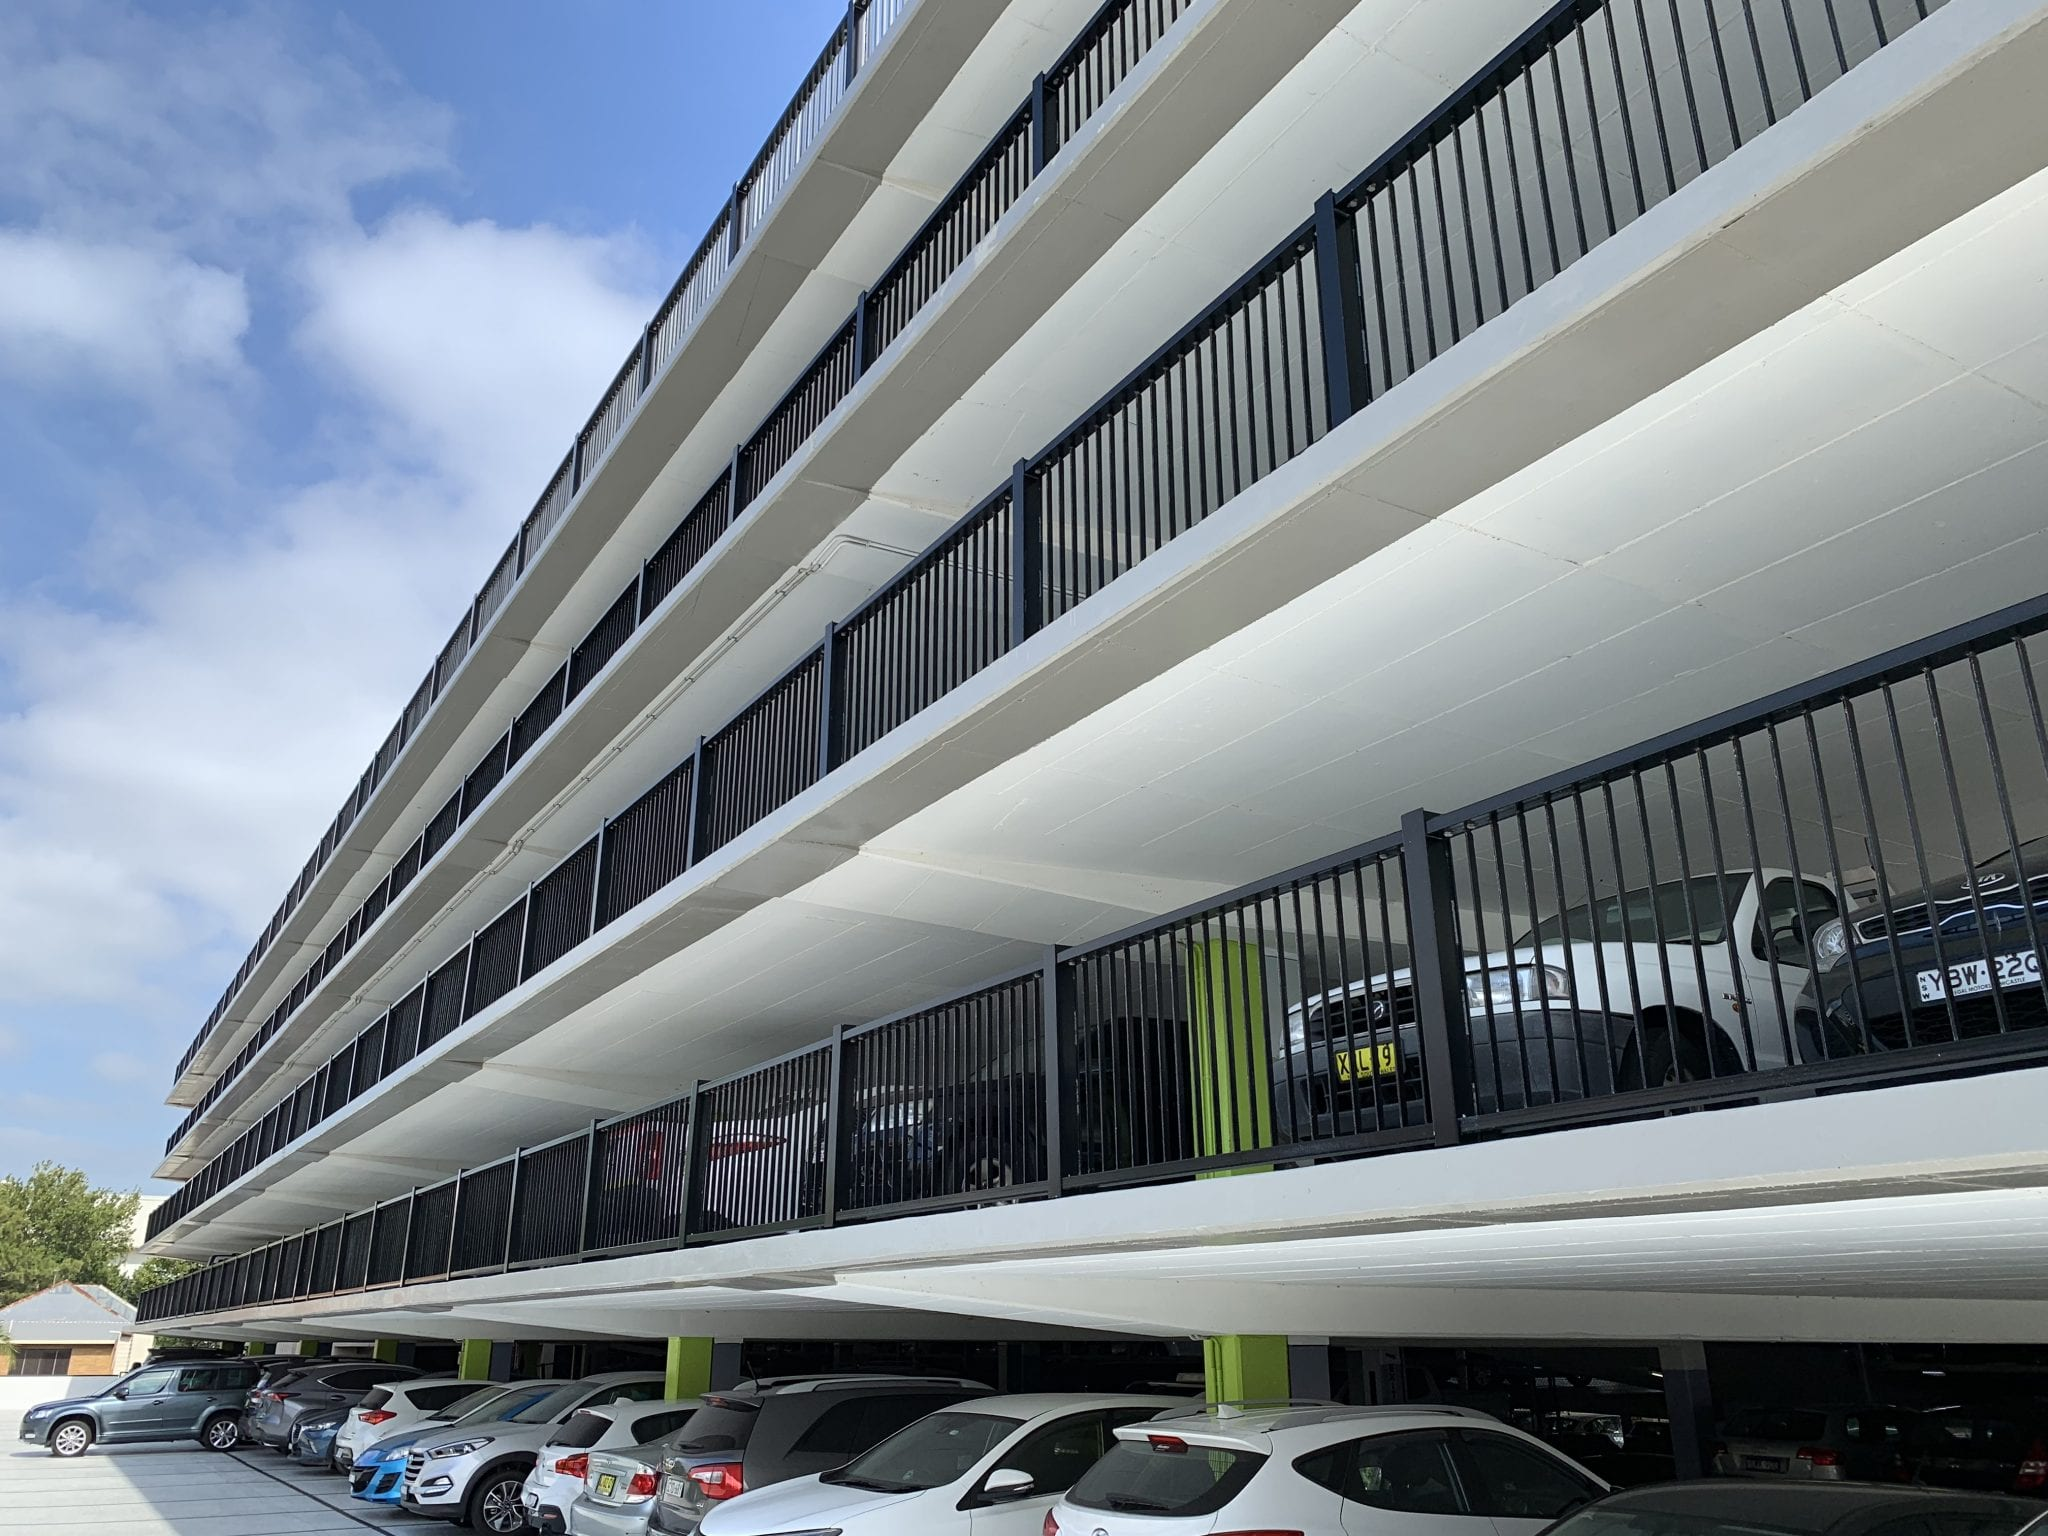 rhino stop elite provides crossflow ventilation on the civic car park